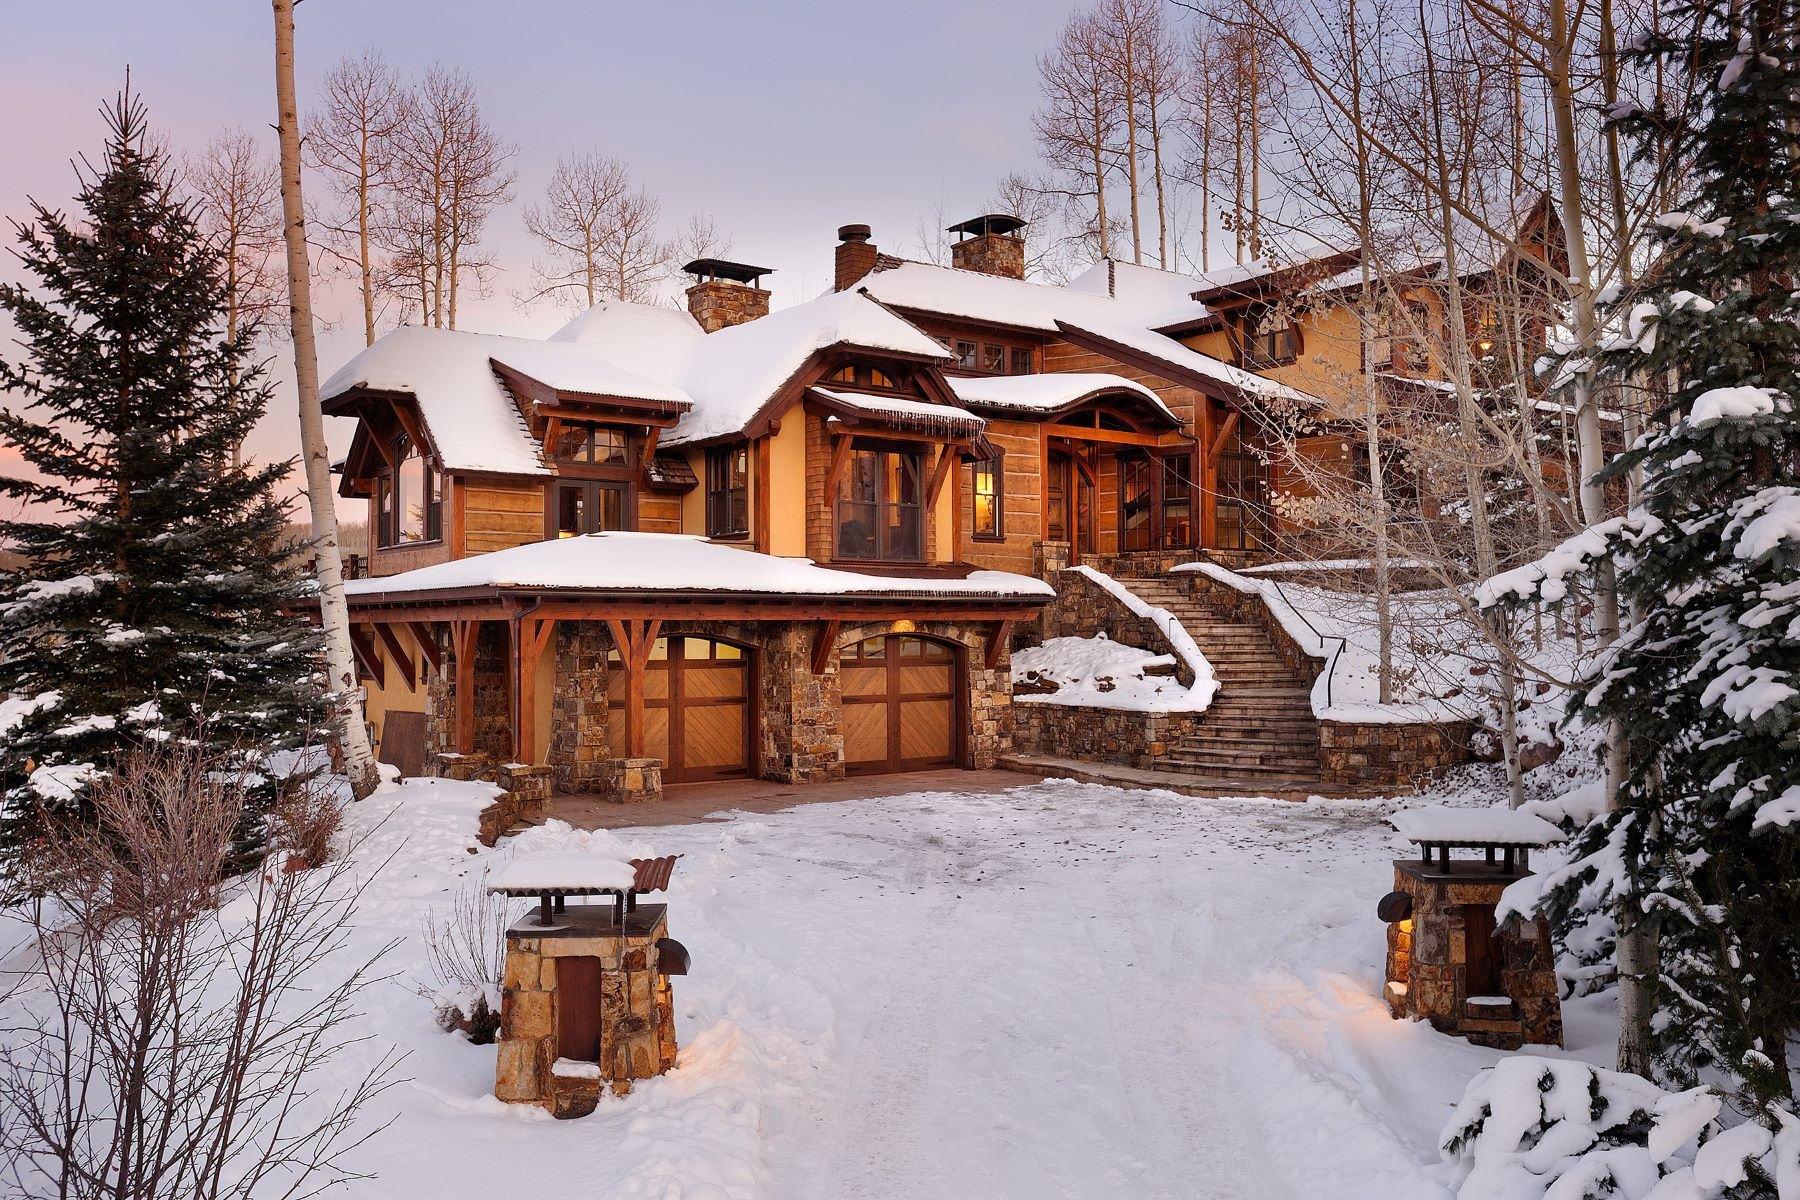 Single Family Homes for Active at Everything at Your Ski Tips 1000 Two Creeks Drive Snowmass Village, Colorado 81615 United States